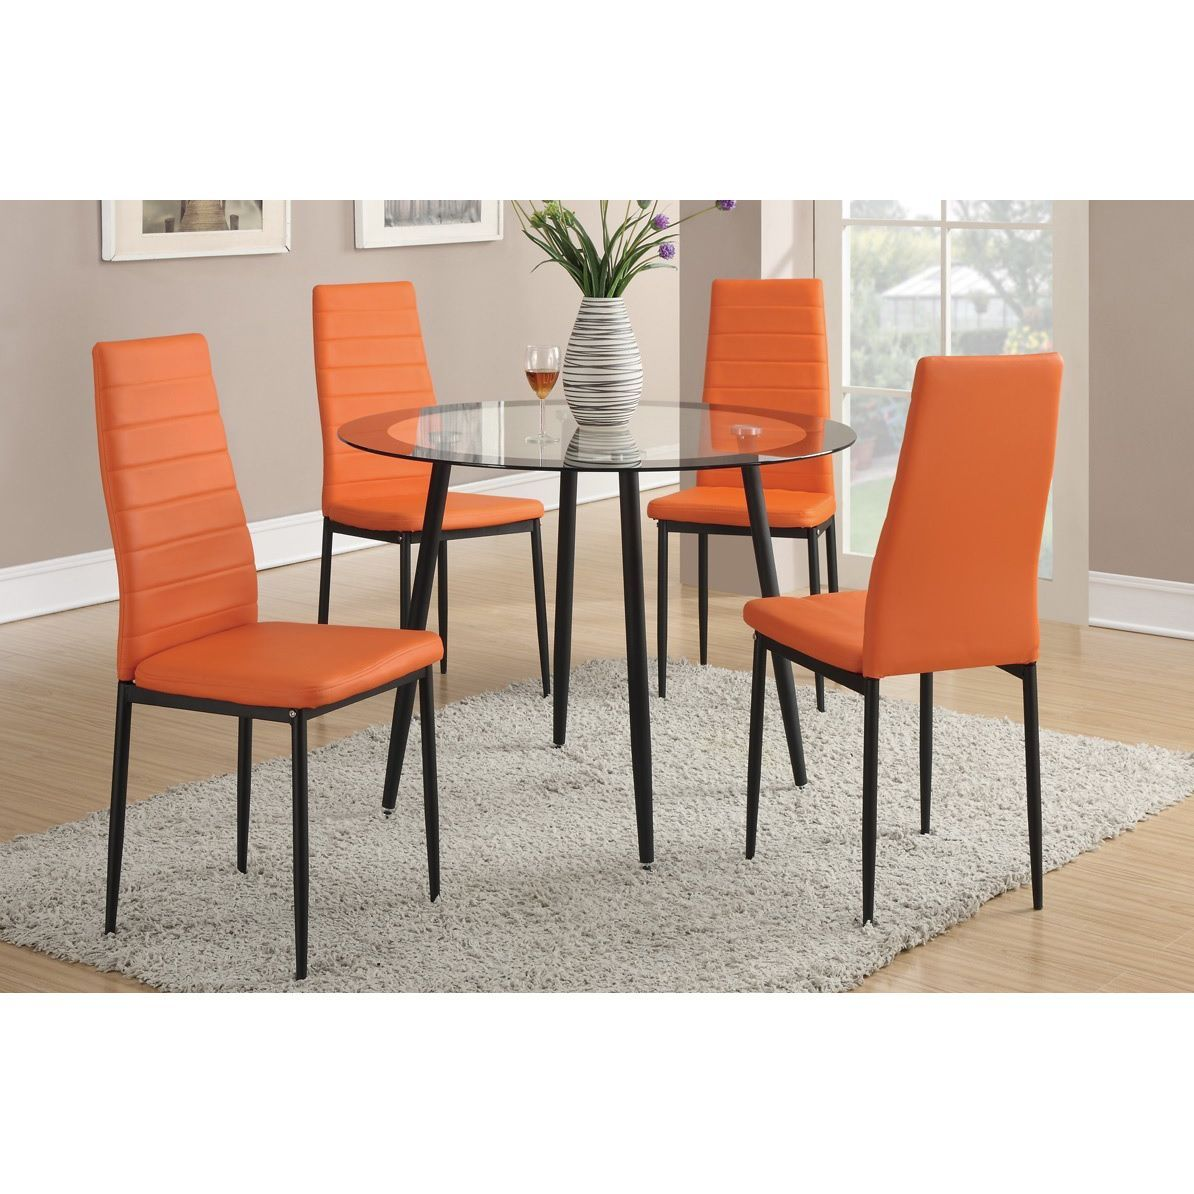 Round dining table and chairs for 4  Doral Dining Chairs Set of  Green Faux Leather  Dining chair